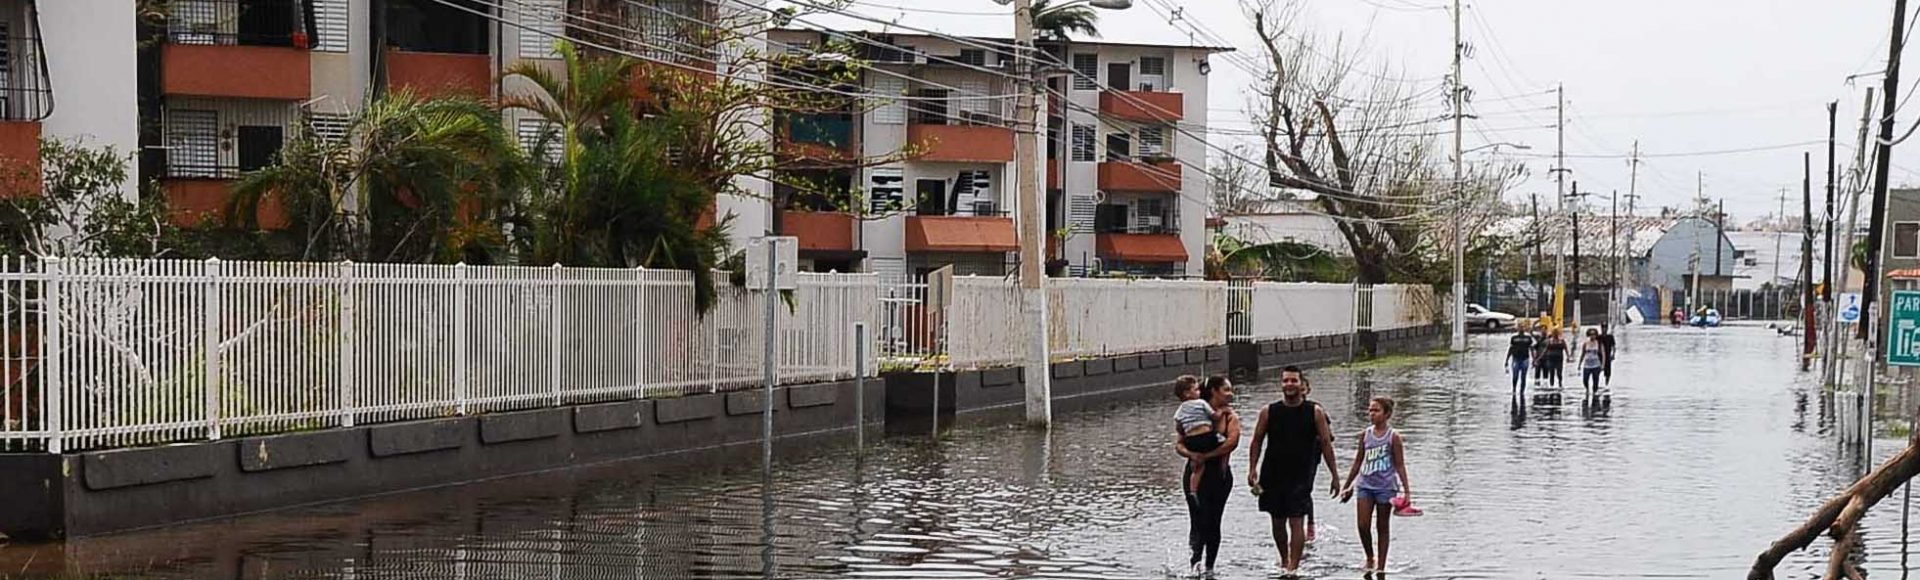 Hurricane Maria Death Toll 70 TIMES MORE Than We Were Told